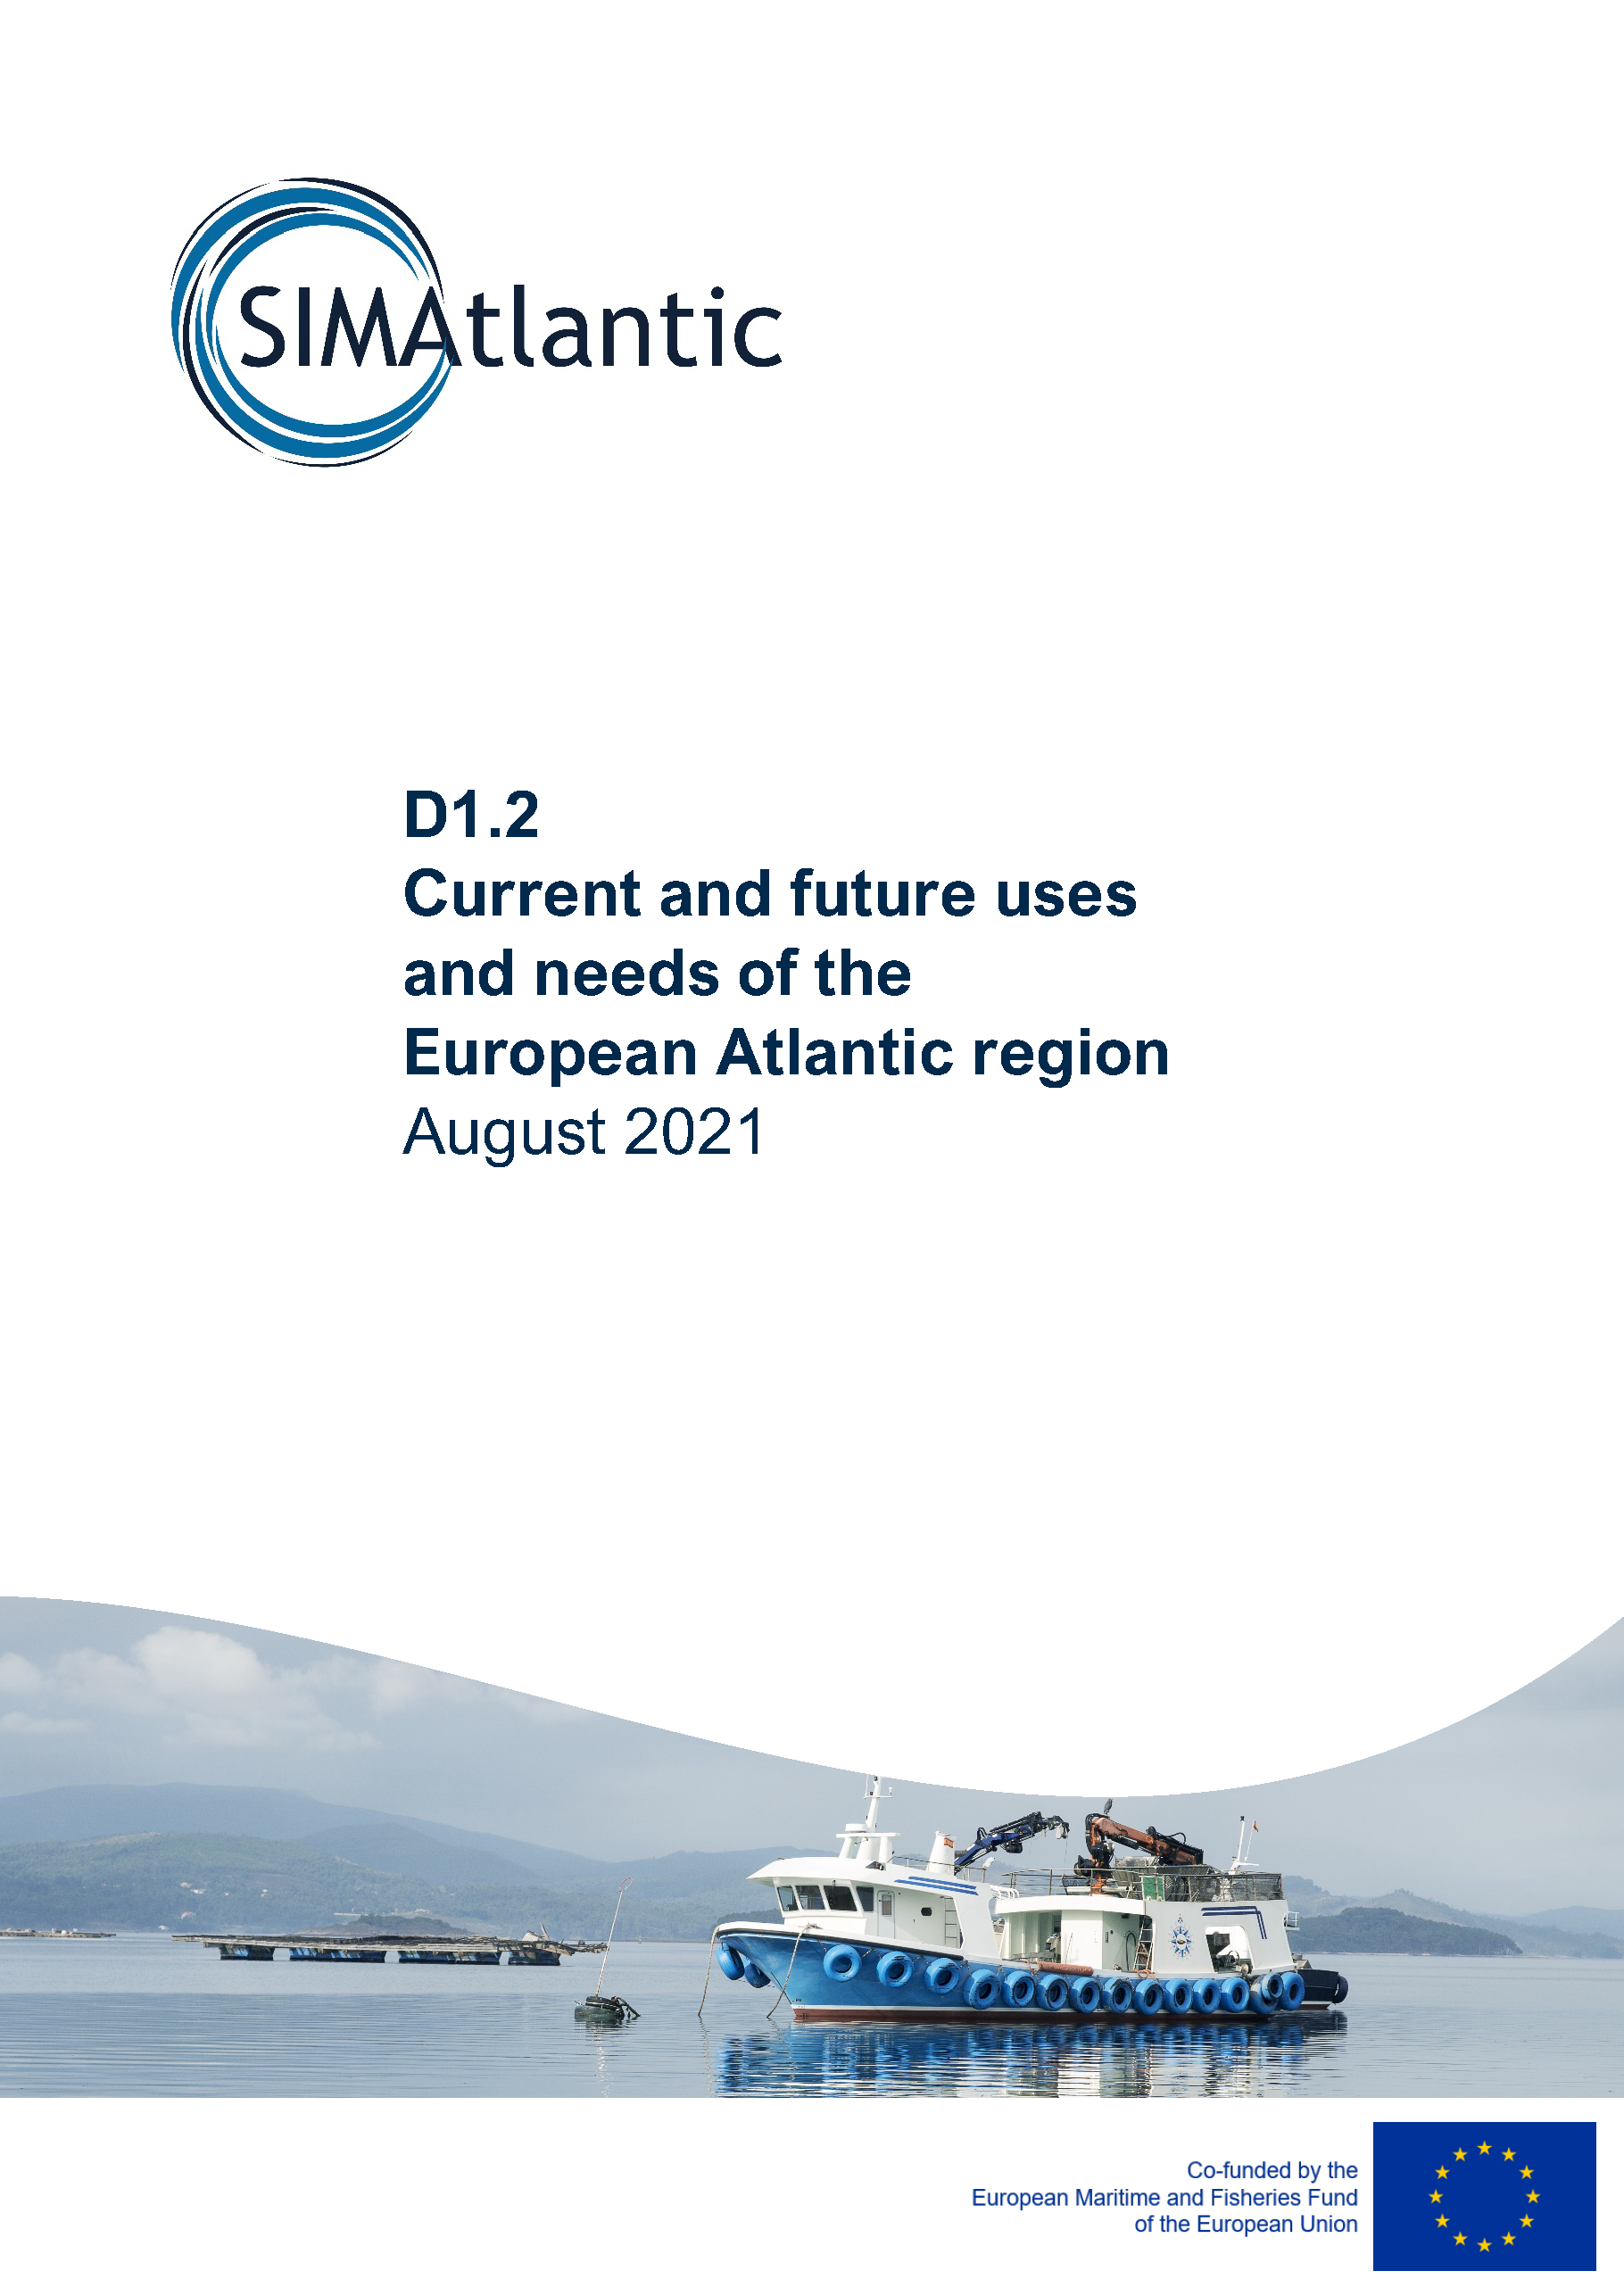 D1.2 Current and future uses and needs of the European Atlantic region